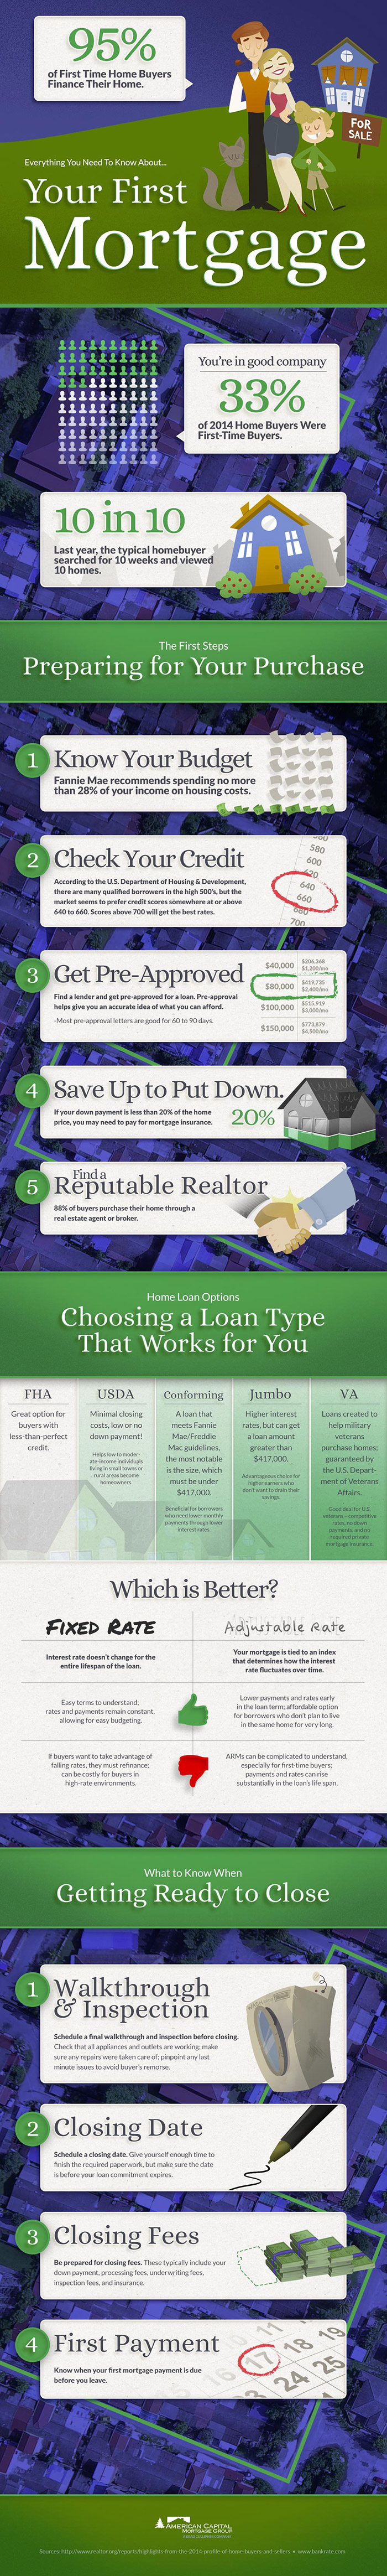 Your First Mortgage Infographic